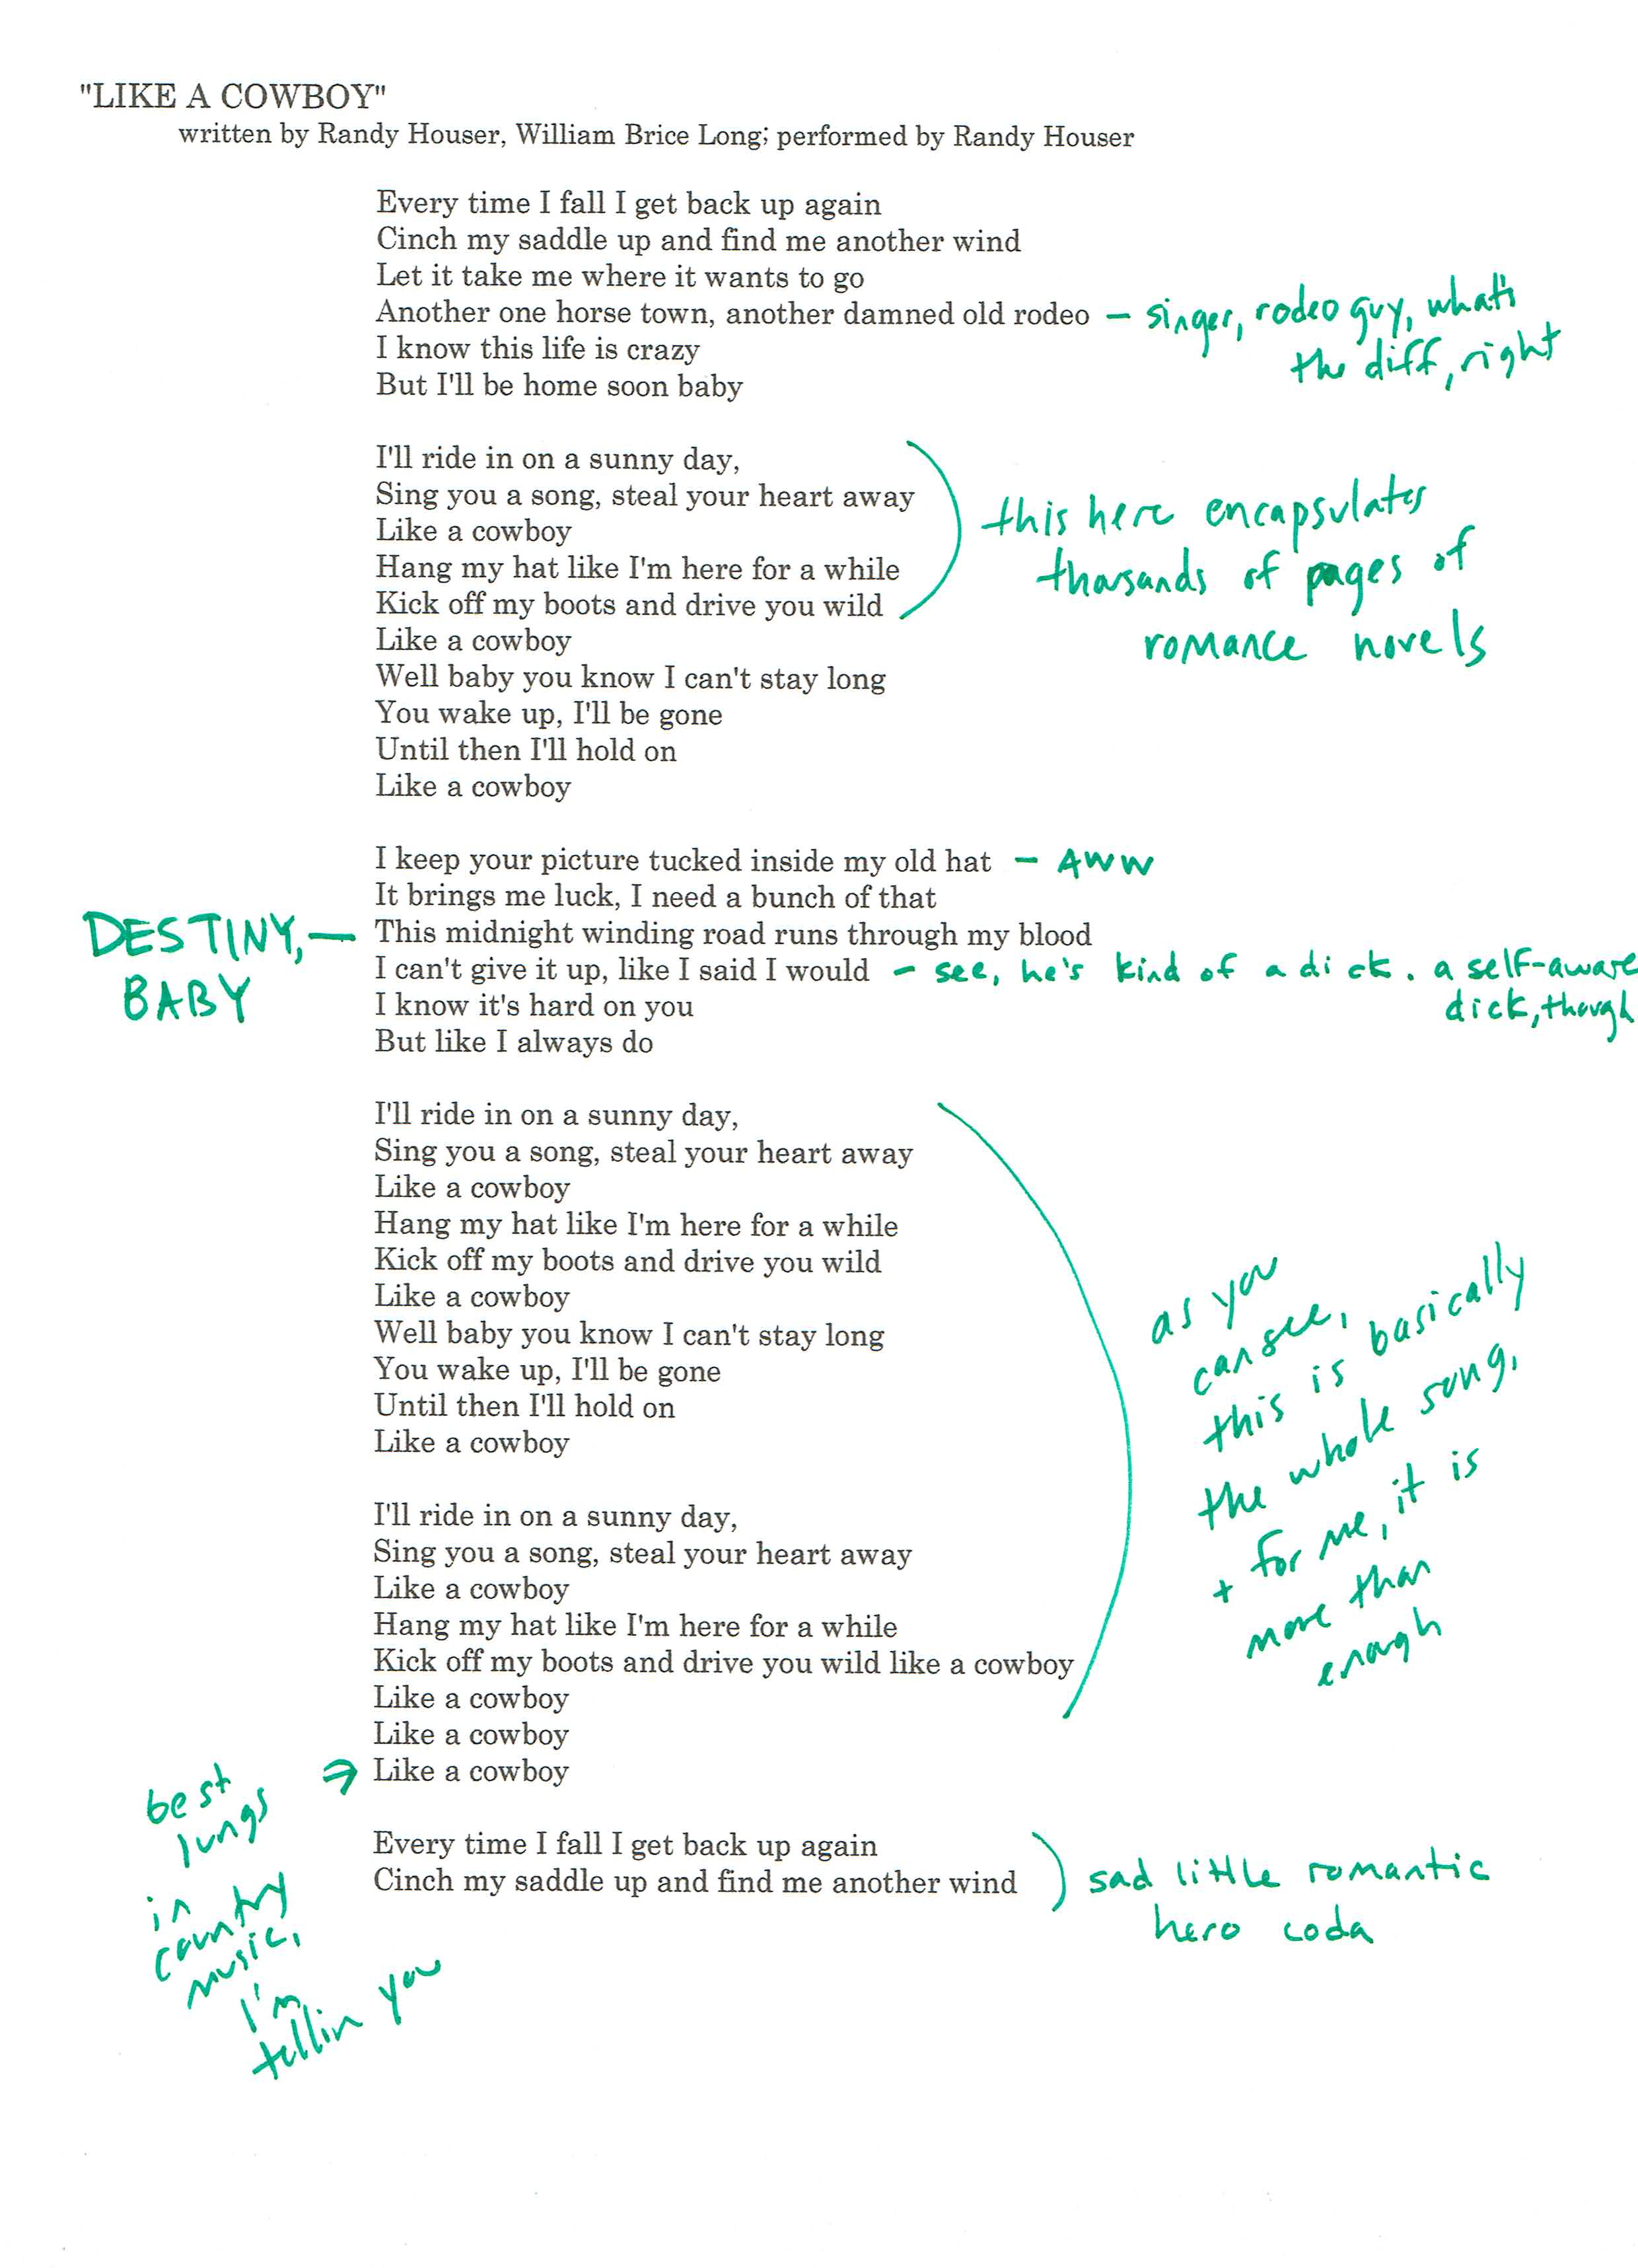 Anatomy of a Country Music Song, Part X